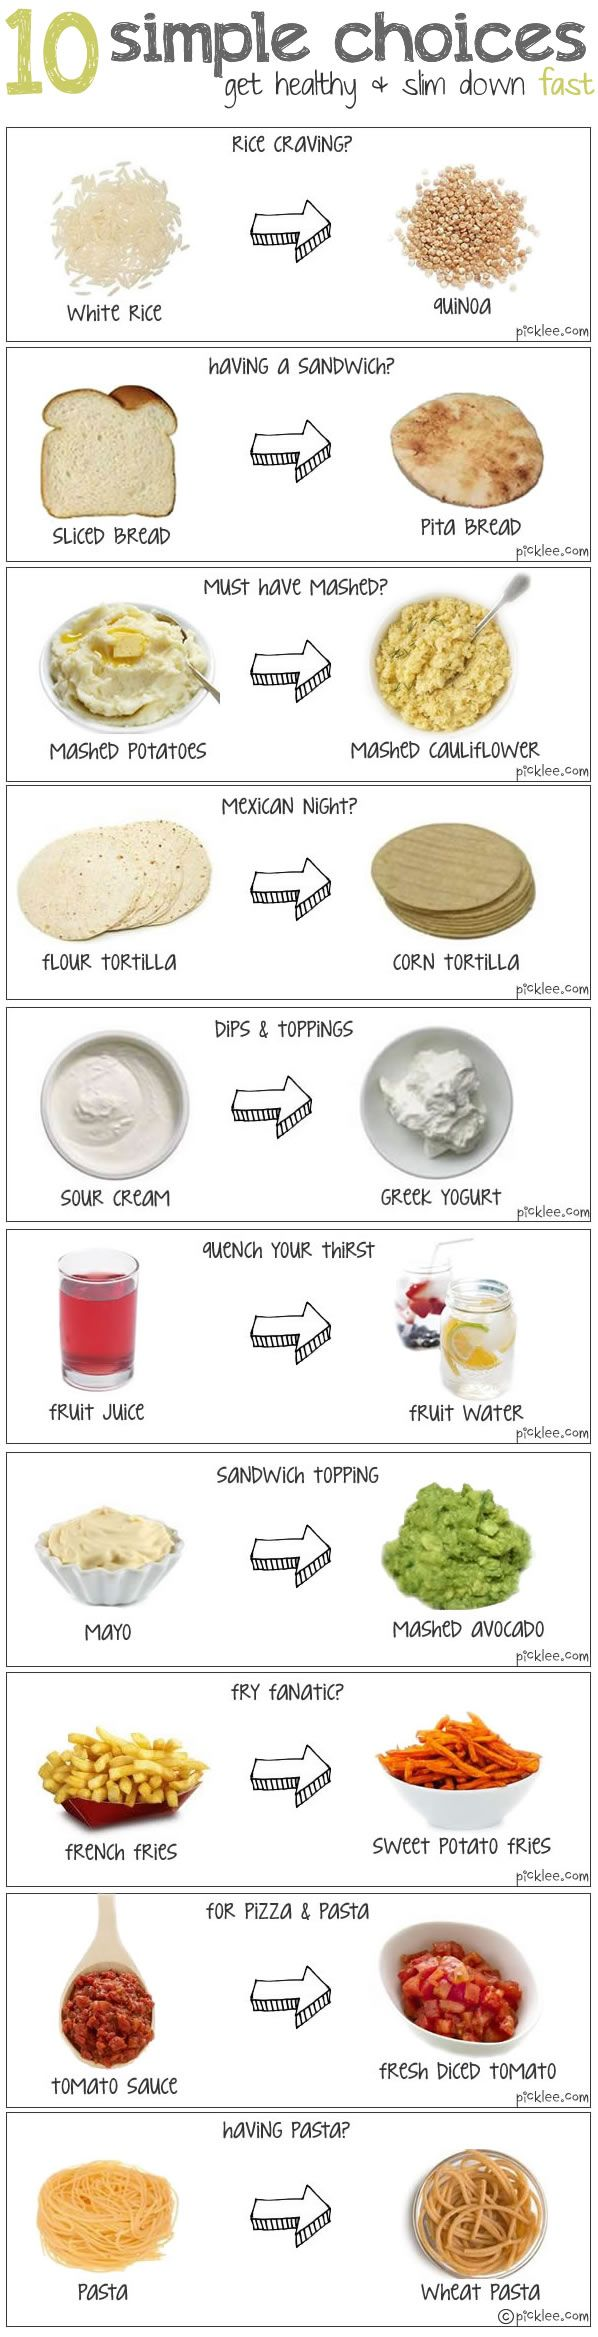 10 Healthy Food substitution chart This is a good thing to start with. These are sort of basics that you should always stick to. And lemme tell you, that non fat plain Greek Yogurt might as well be sour cream. It tastes JUST like it. Happy healthy, pinners.